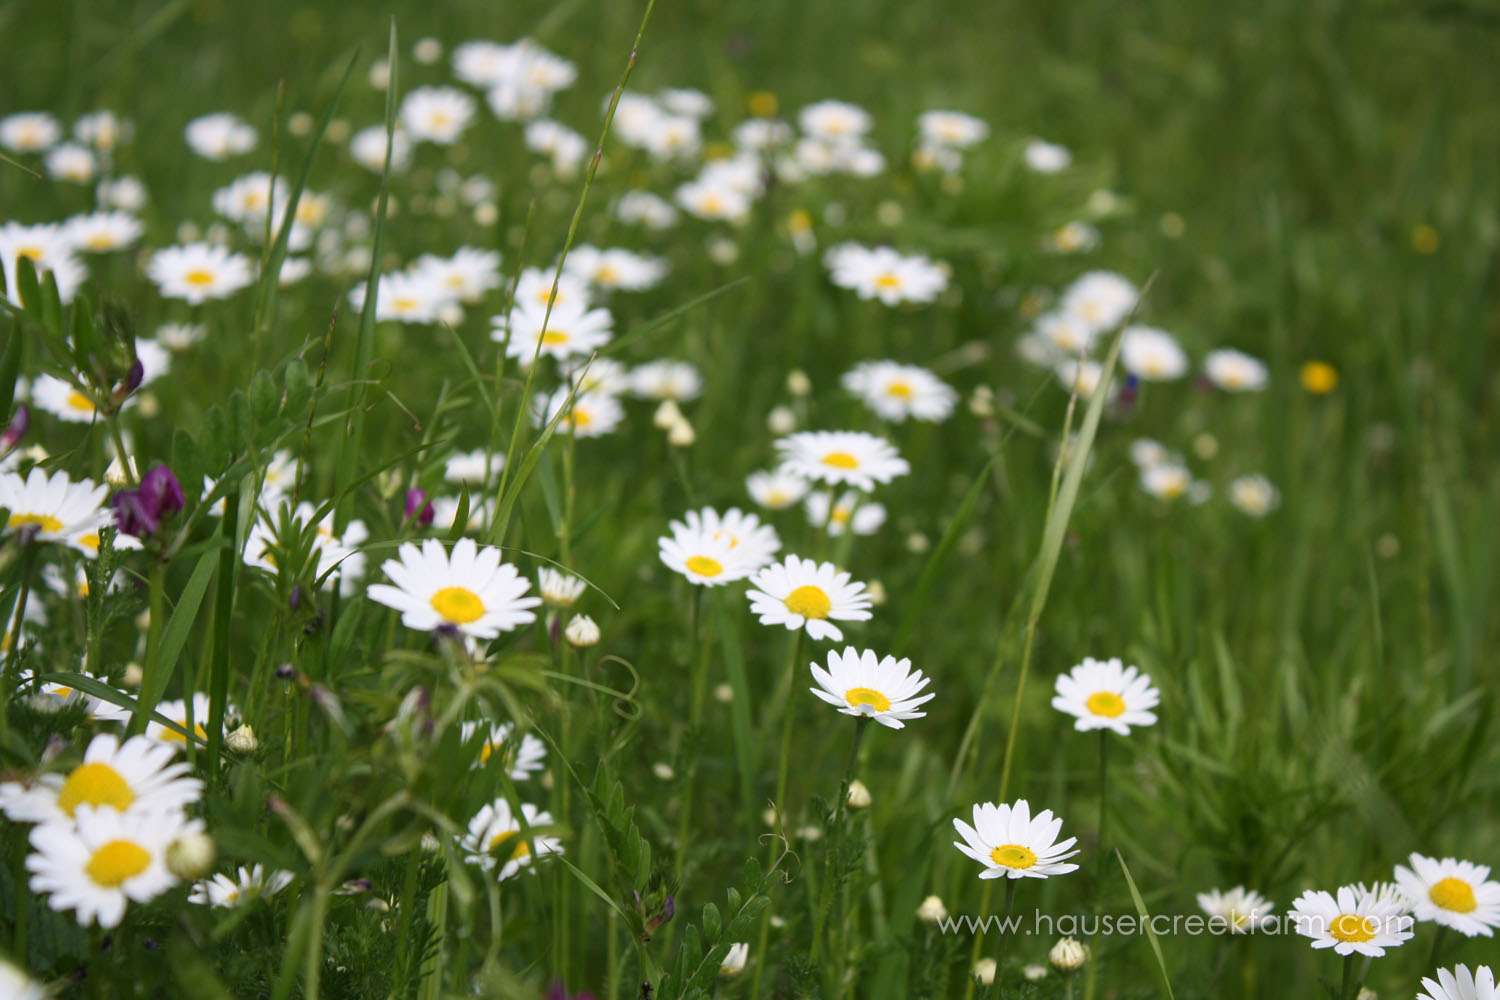 Wild daisies in a field